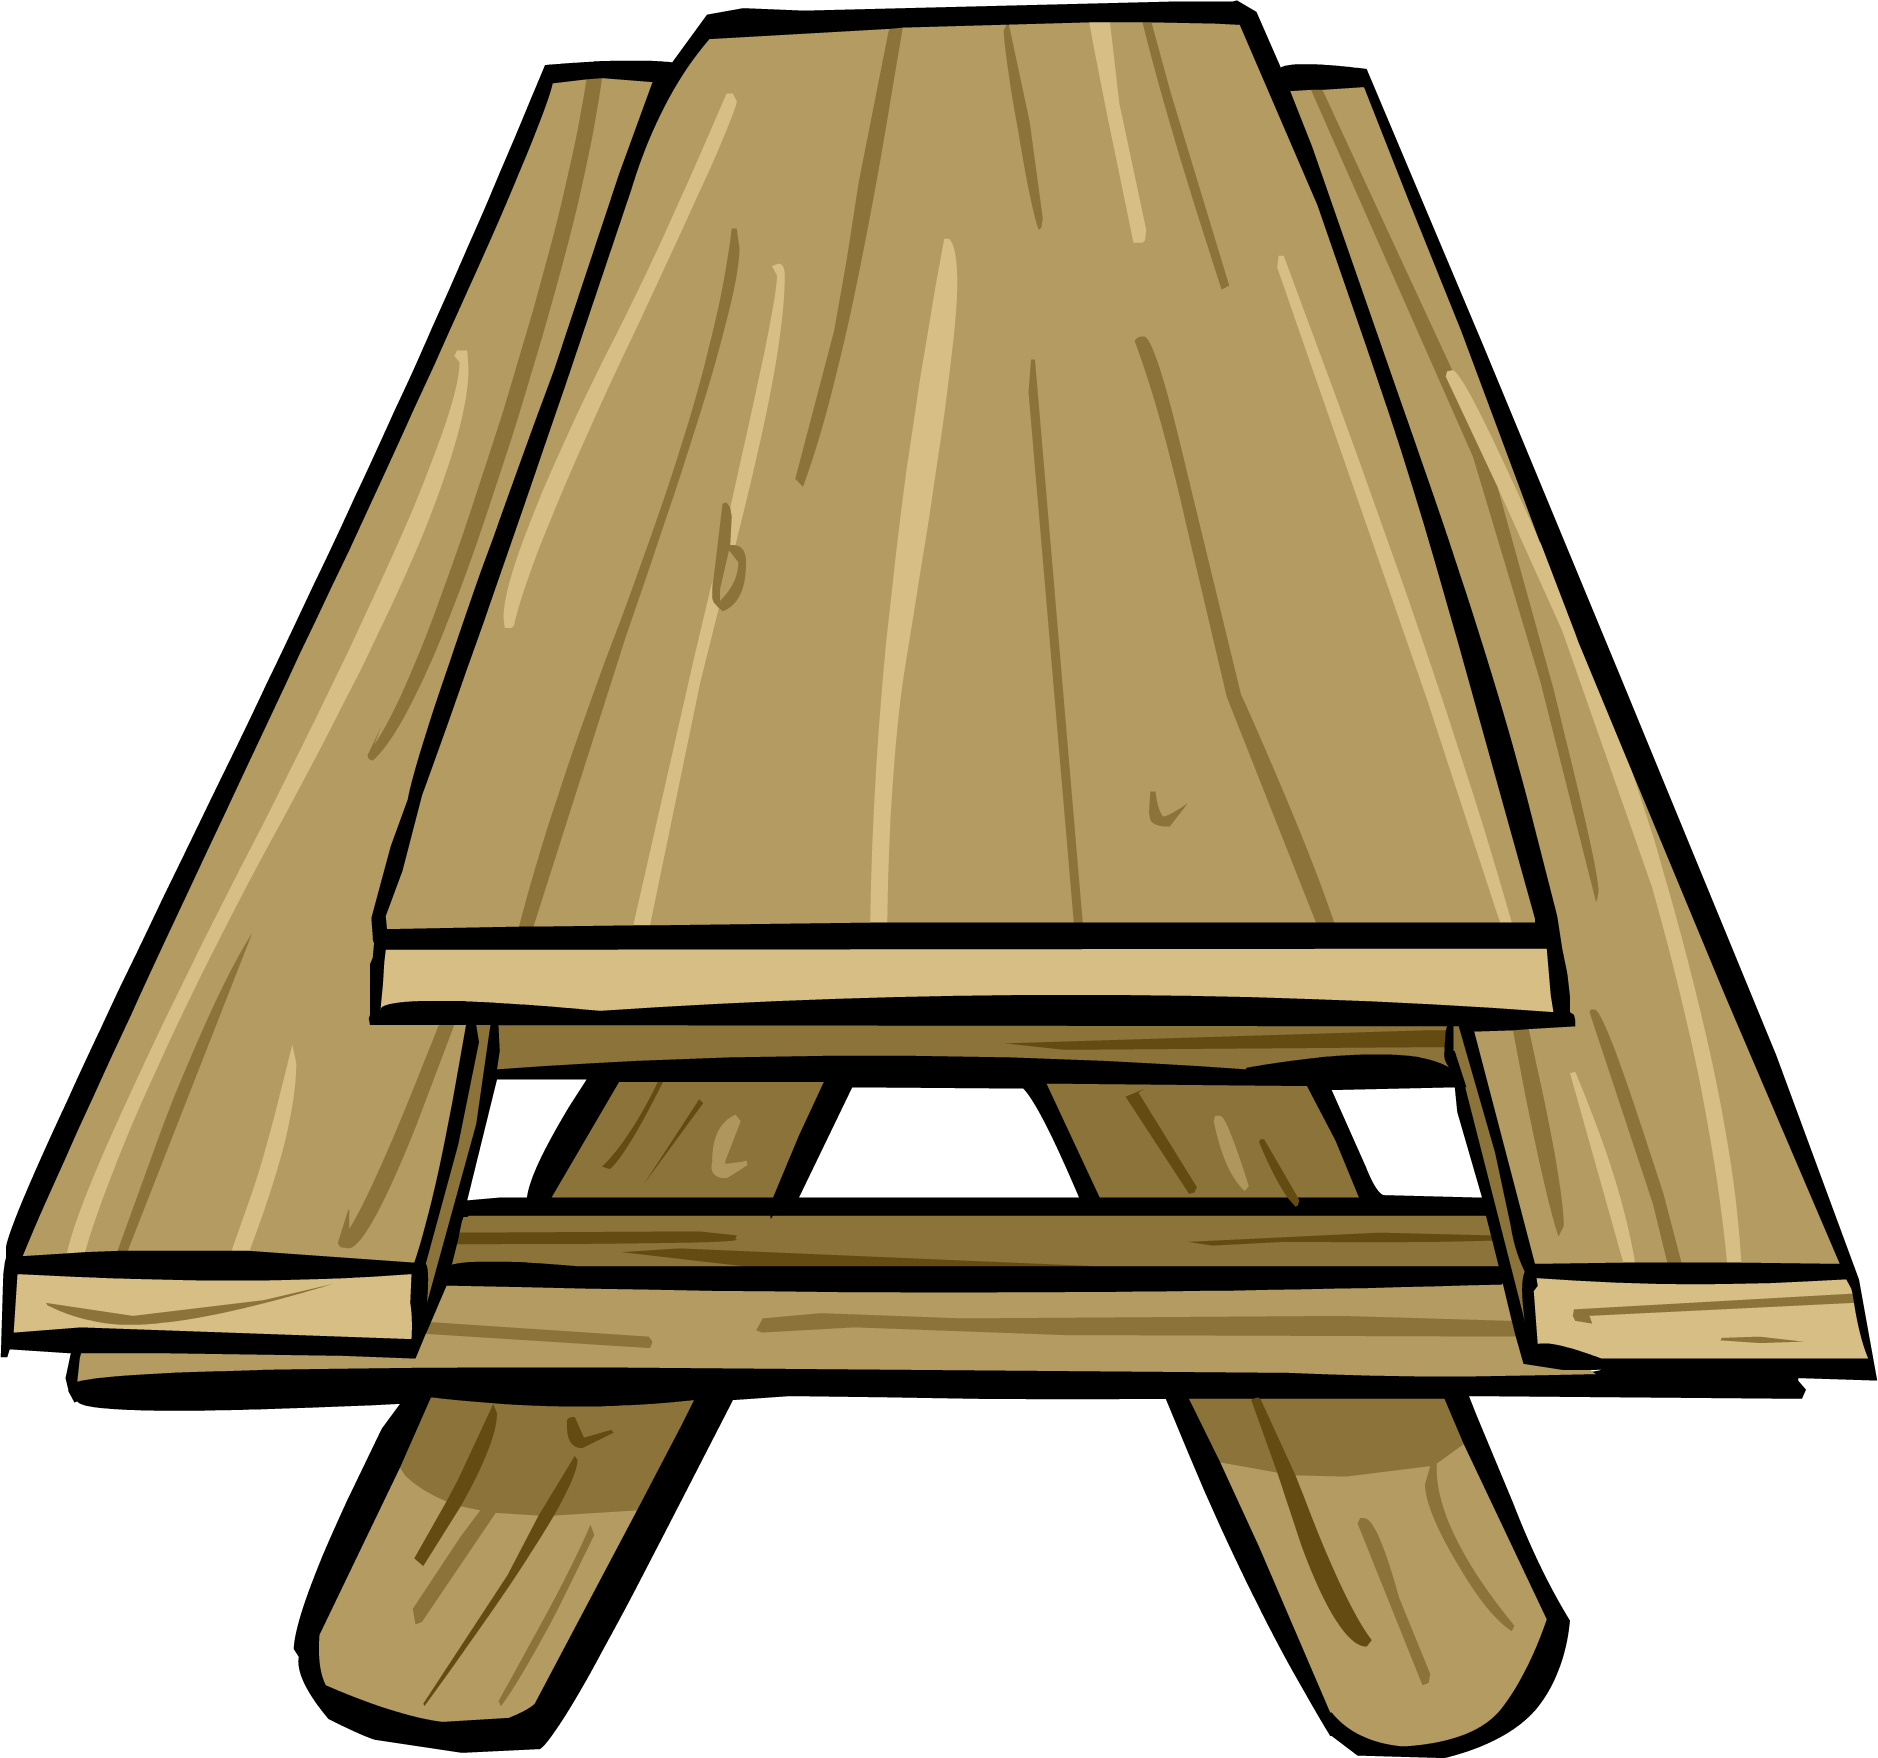 Picnic Table clipart june Picnic Wikia by Wiki